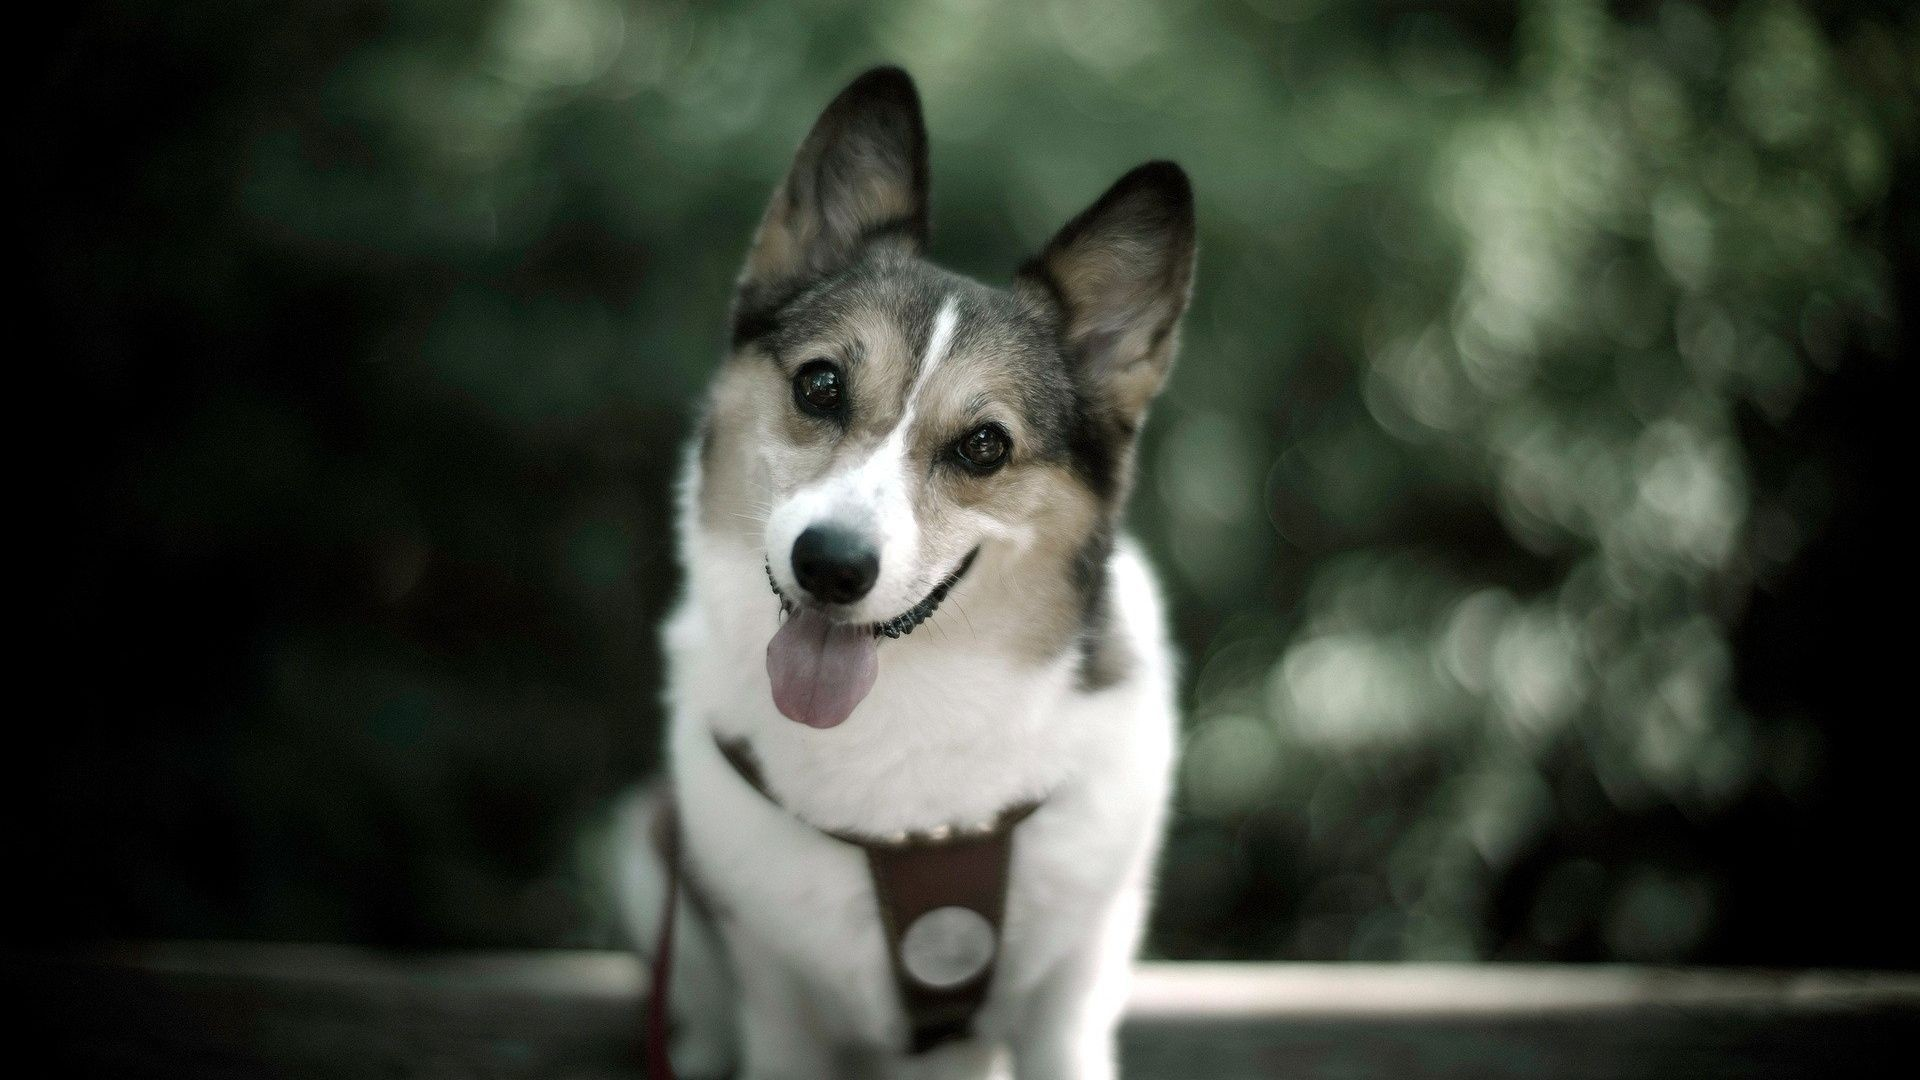 … Cute Dog Wallpapers